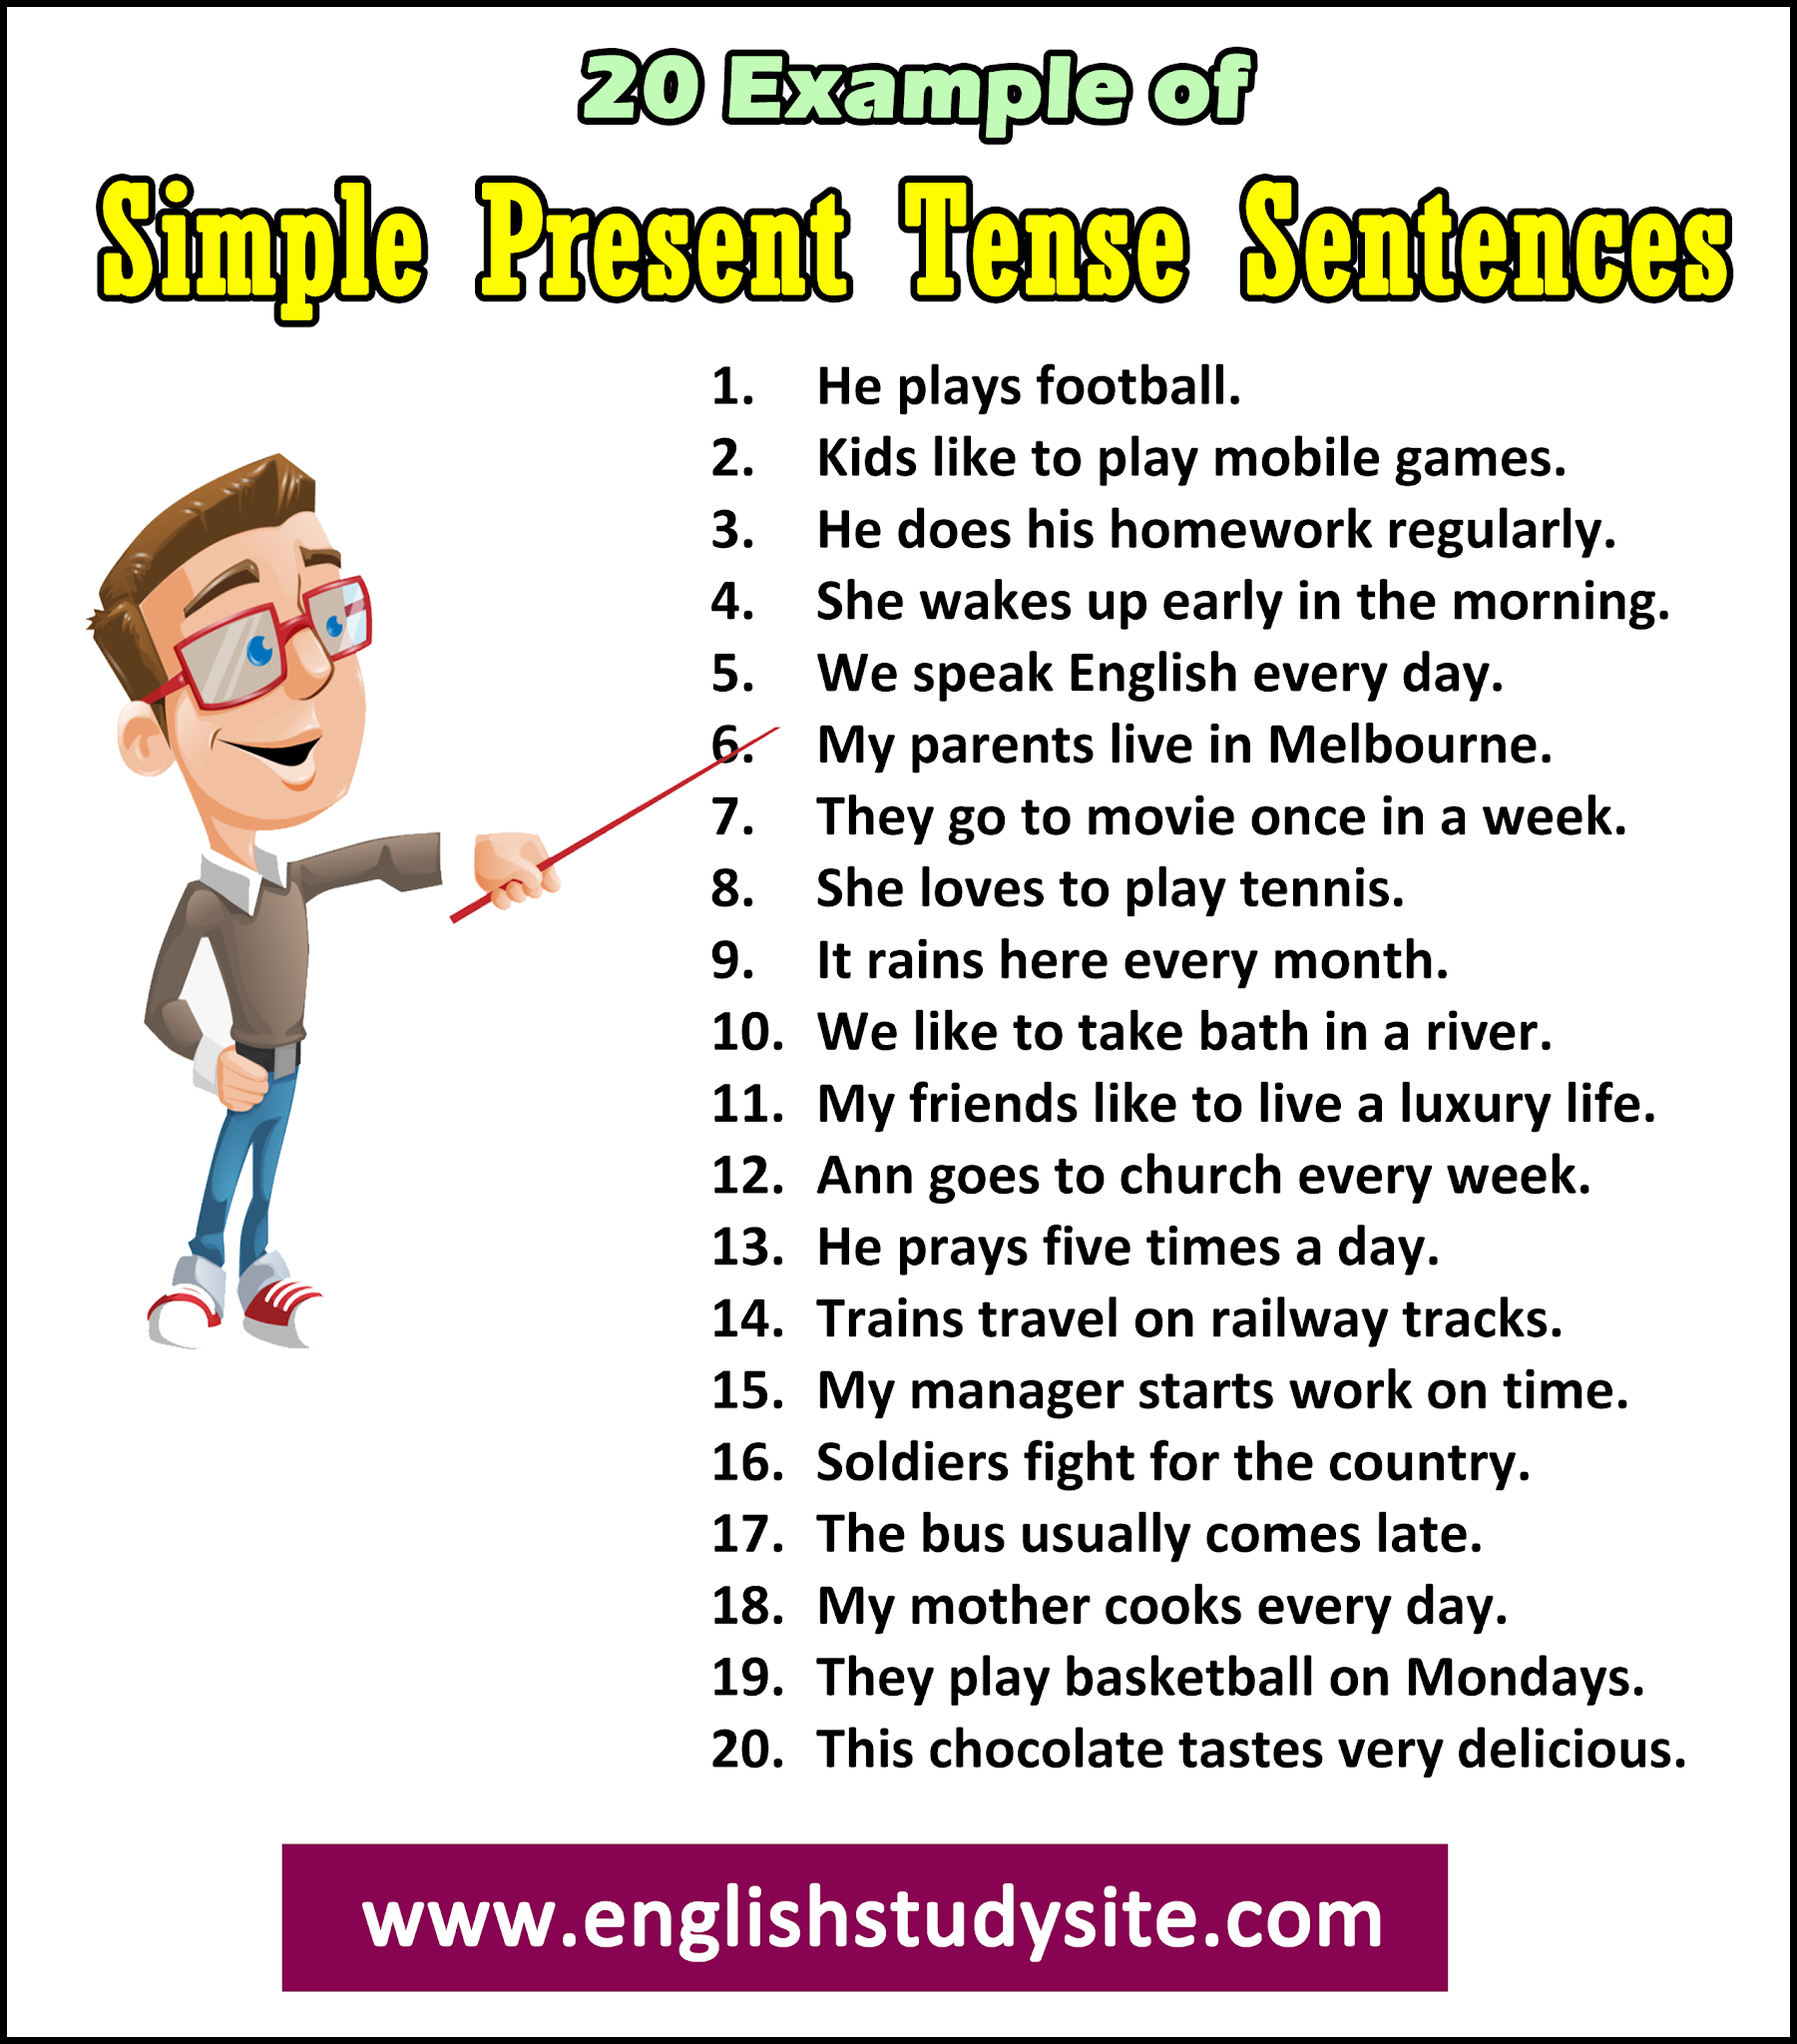 20 Example Sentences Of Simple Present Tense